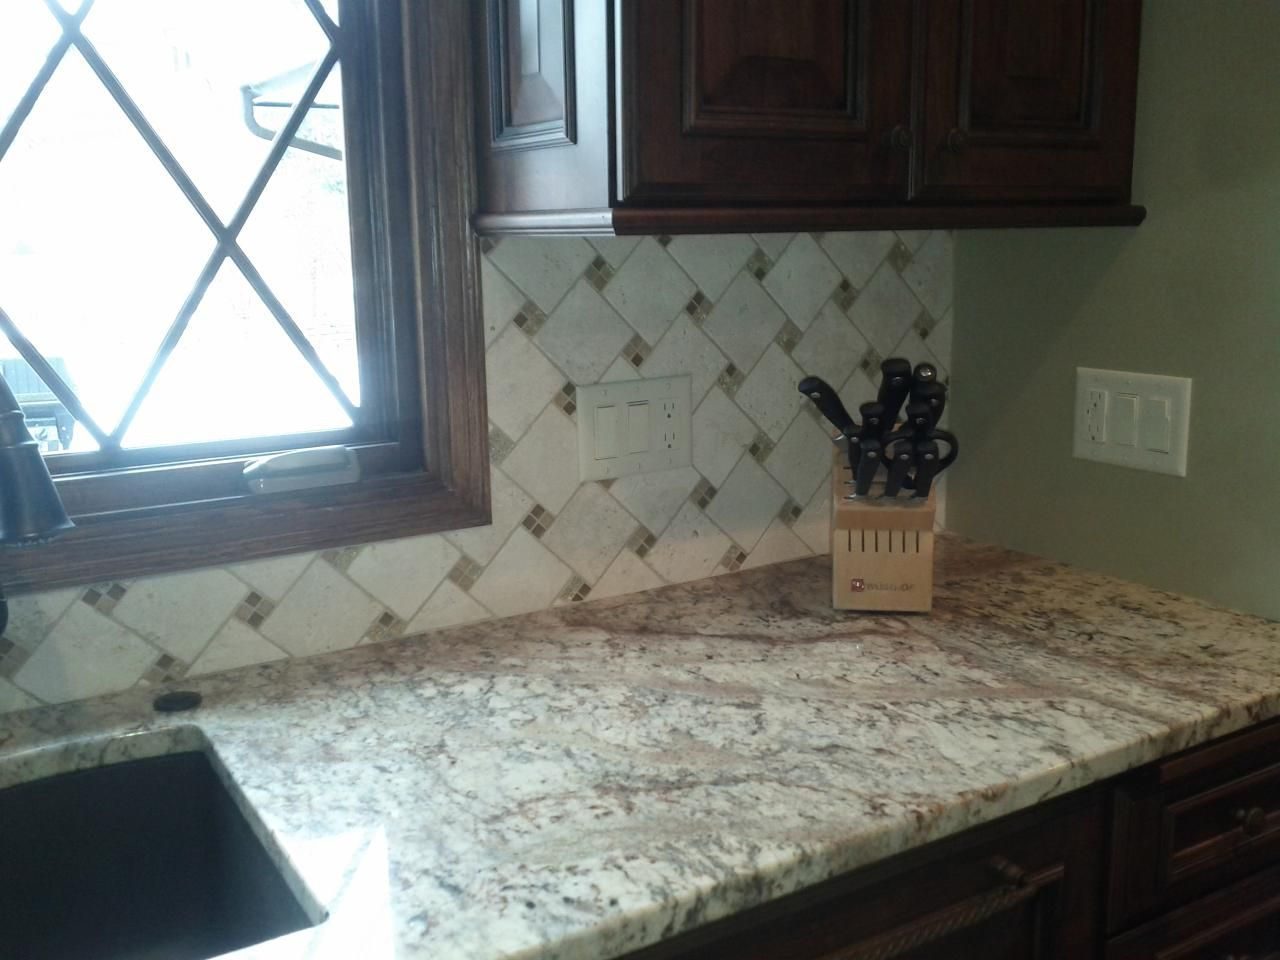 Kitchen Backsplash Diagonal Pattern pinwheel tile backsplash |  shows a stone backsplash installed